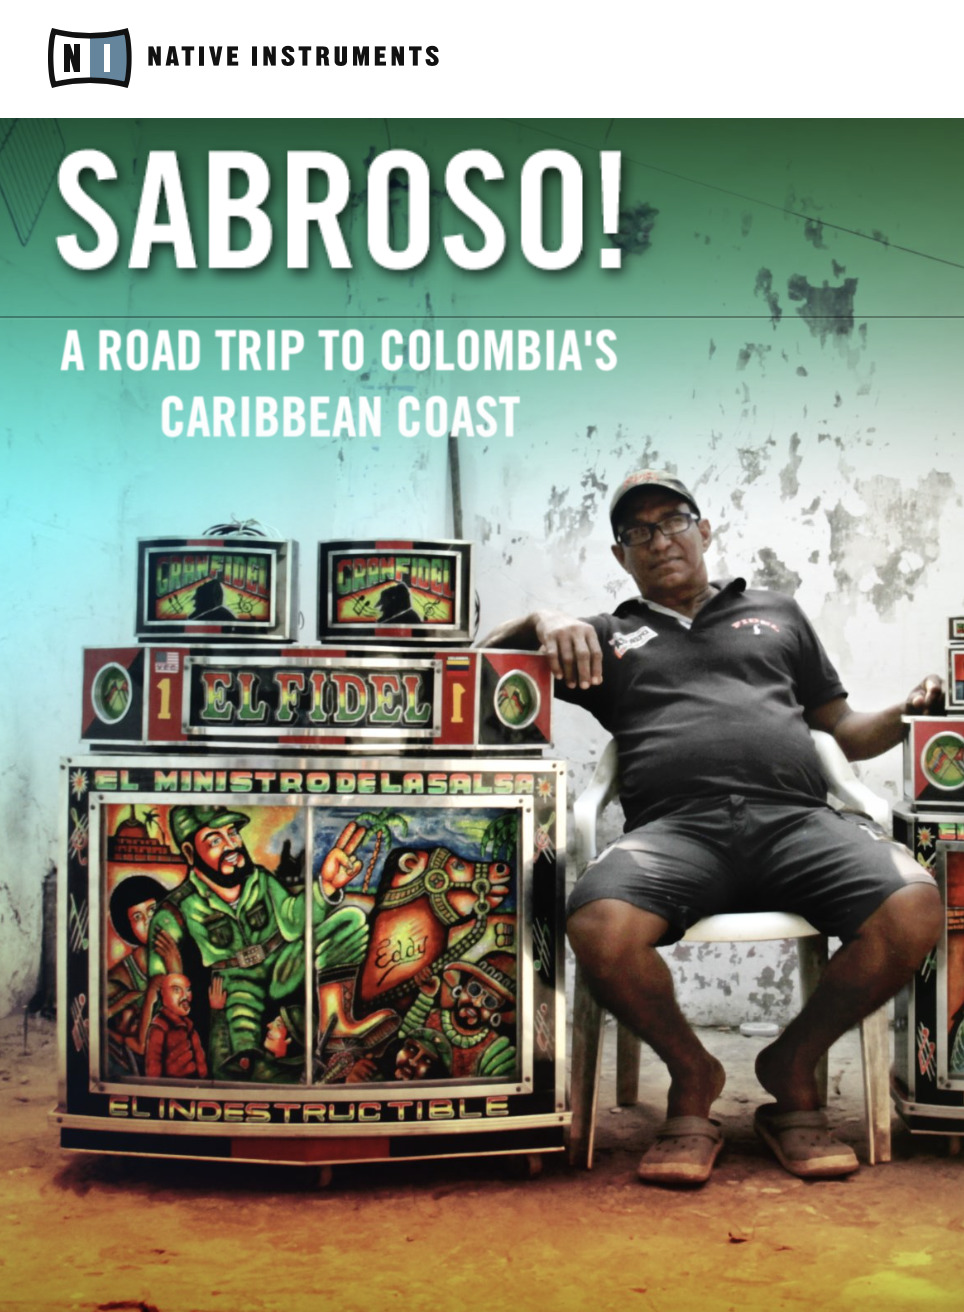 SABROSO! A Road Trip to Colombia's Caribbean Coast